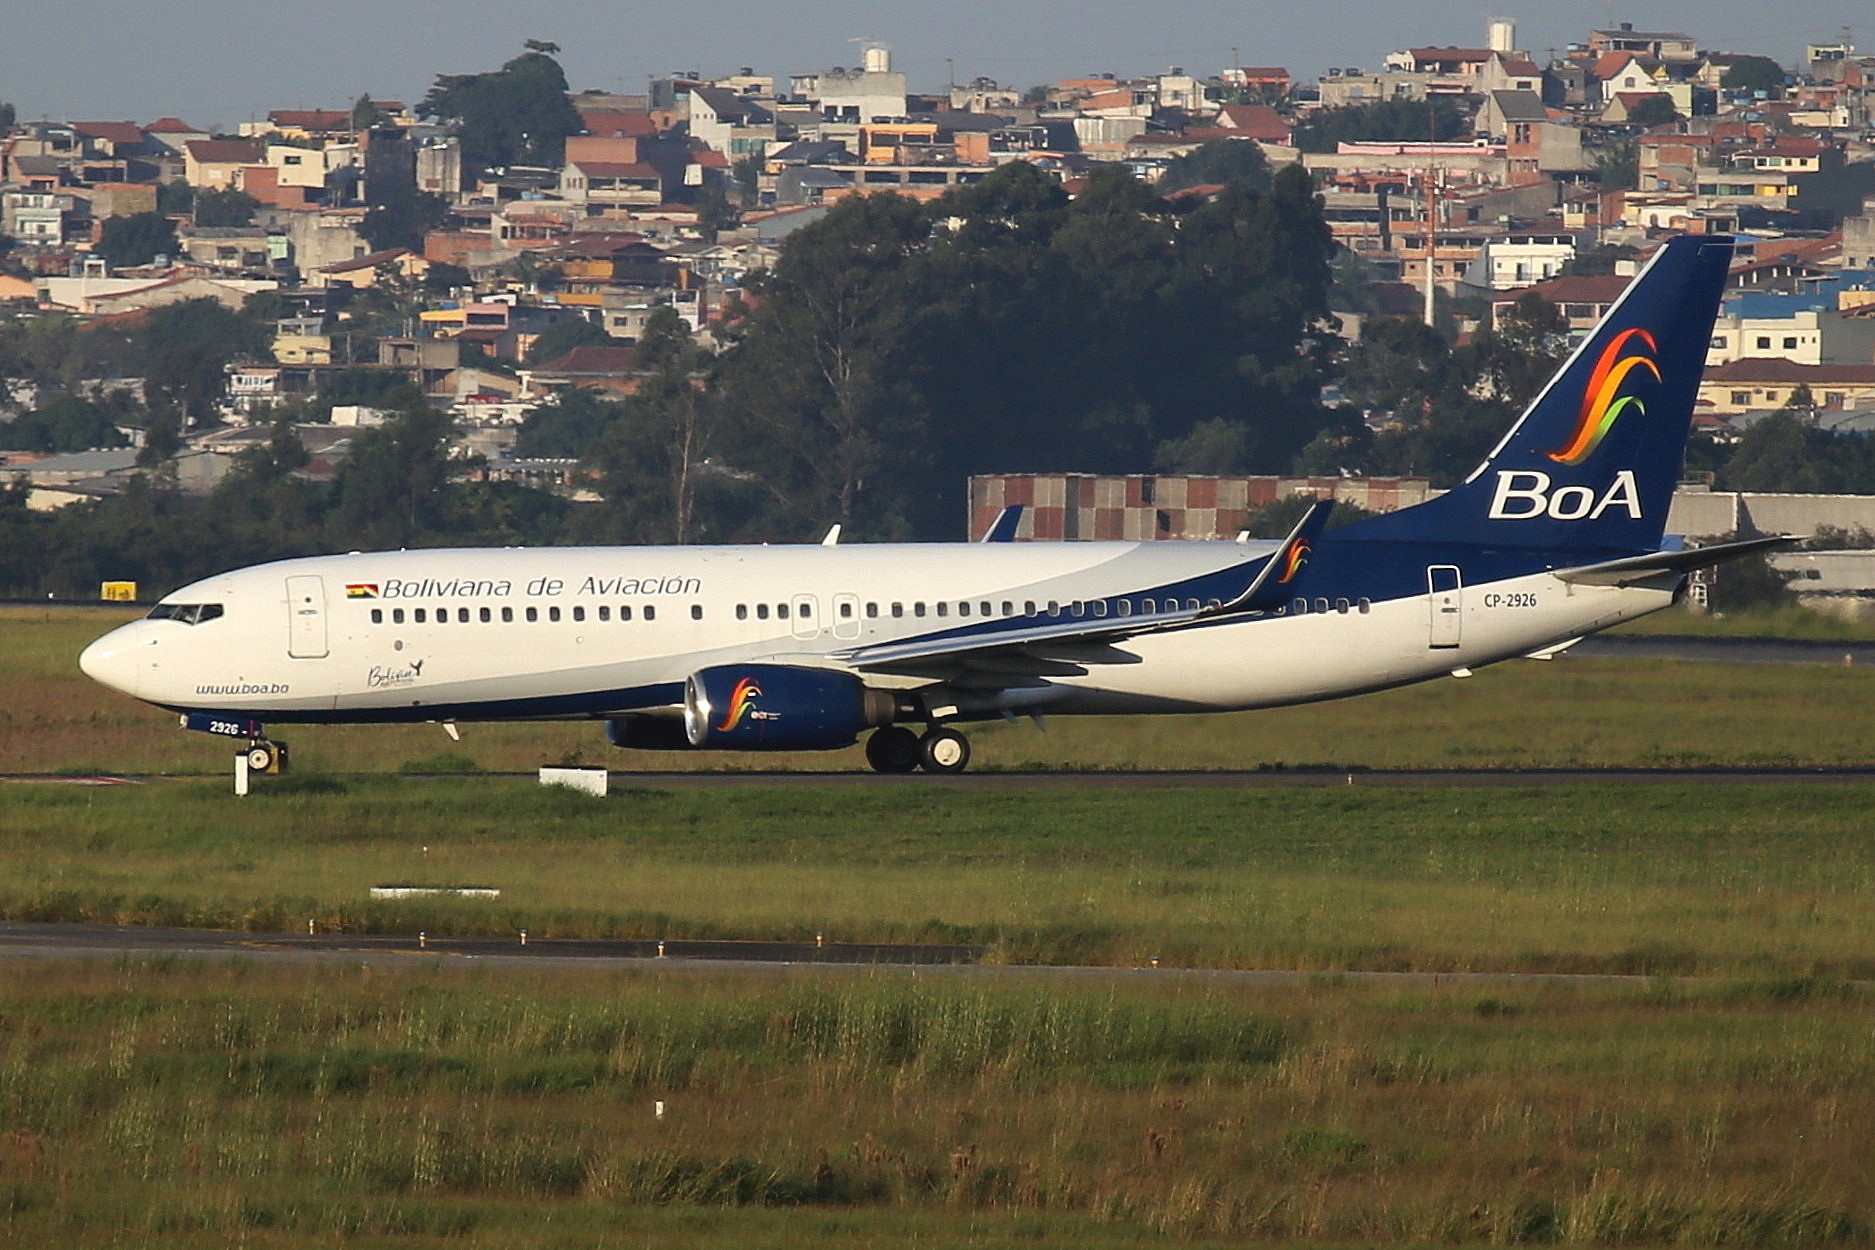 CP-2926 Boliviana de Aviacion (BOA) B737-8W taken from the roof of the Matiz Hotel at Sao Paulo Guarulhos Airport 27th April 2019 by John Wood